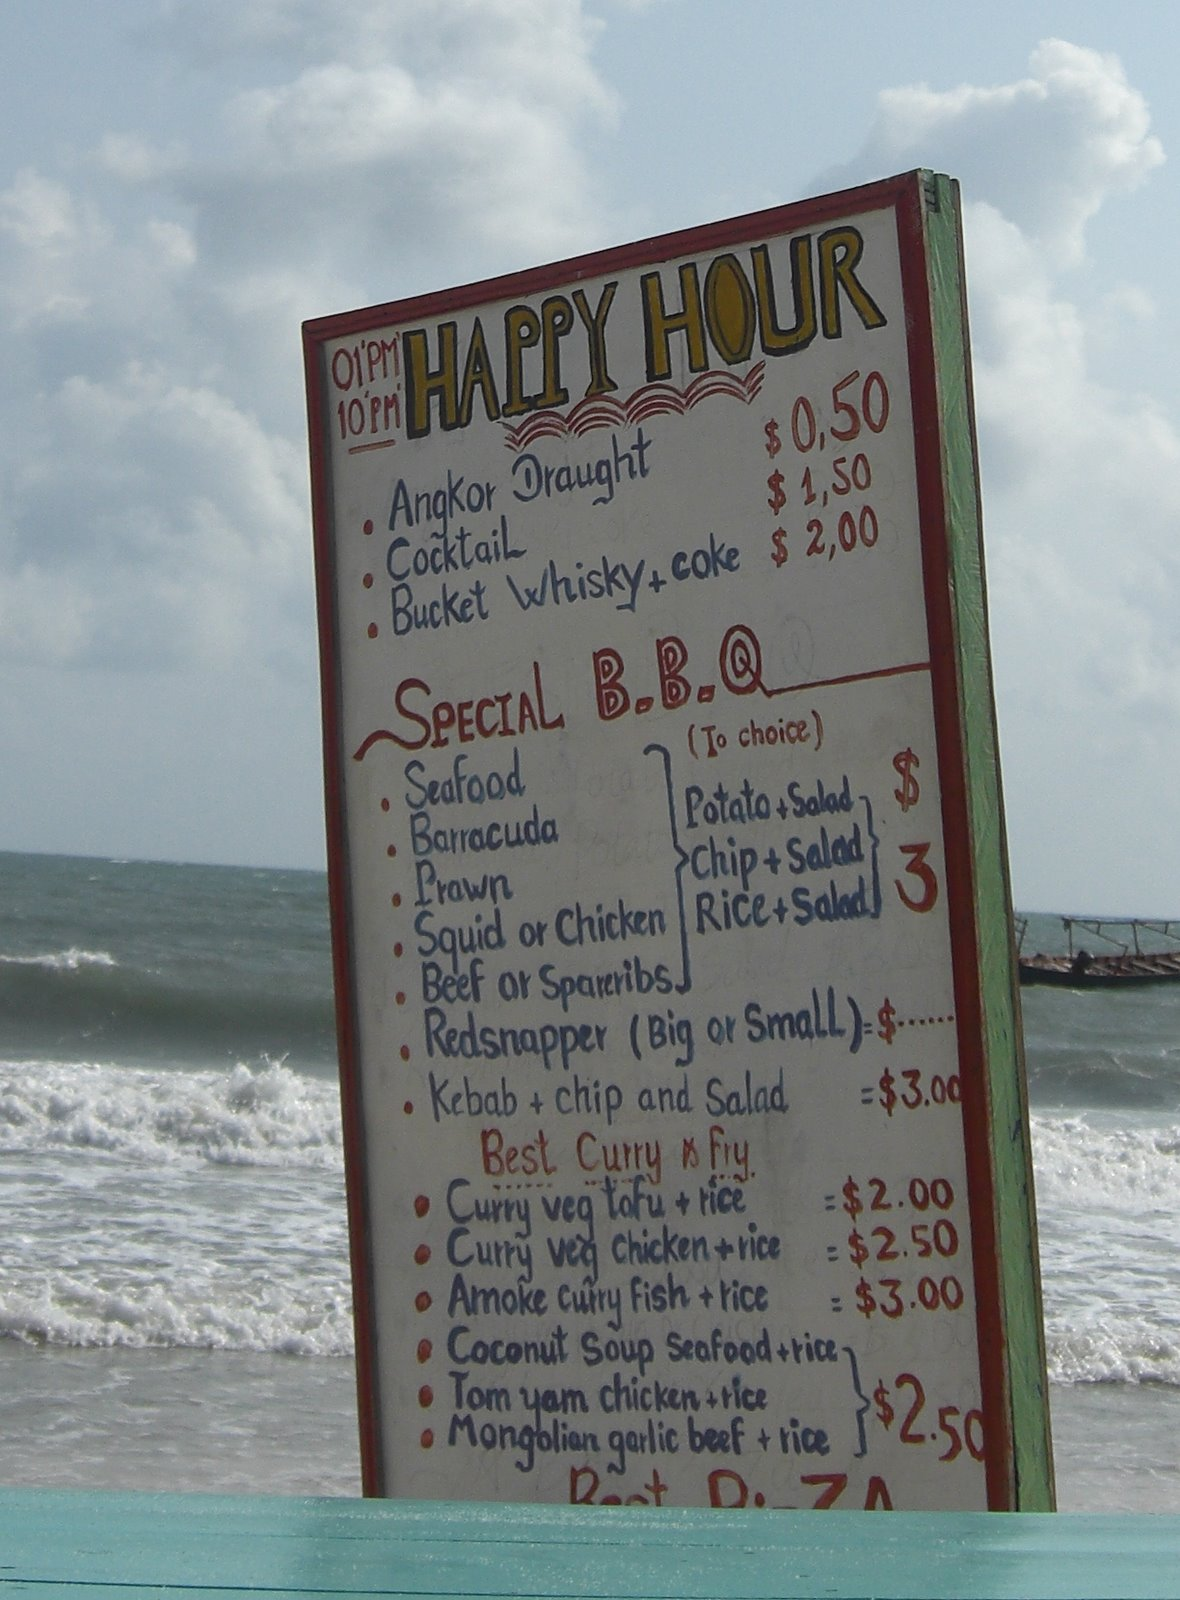 Drinks prices...